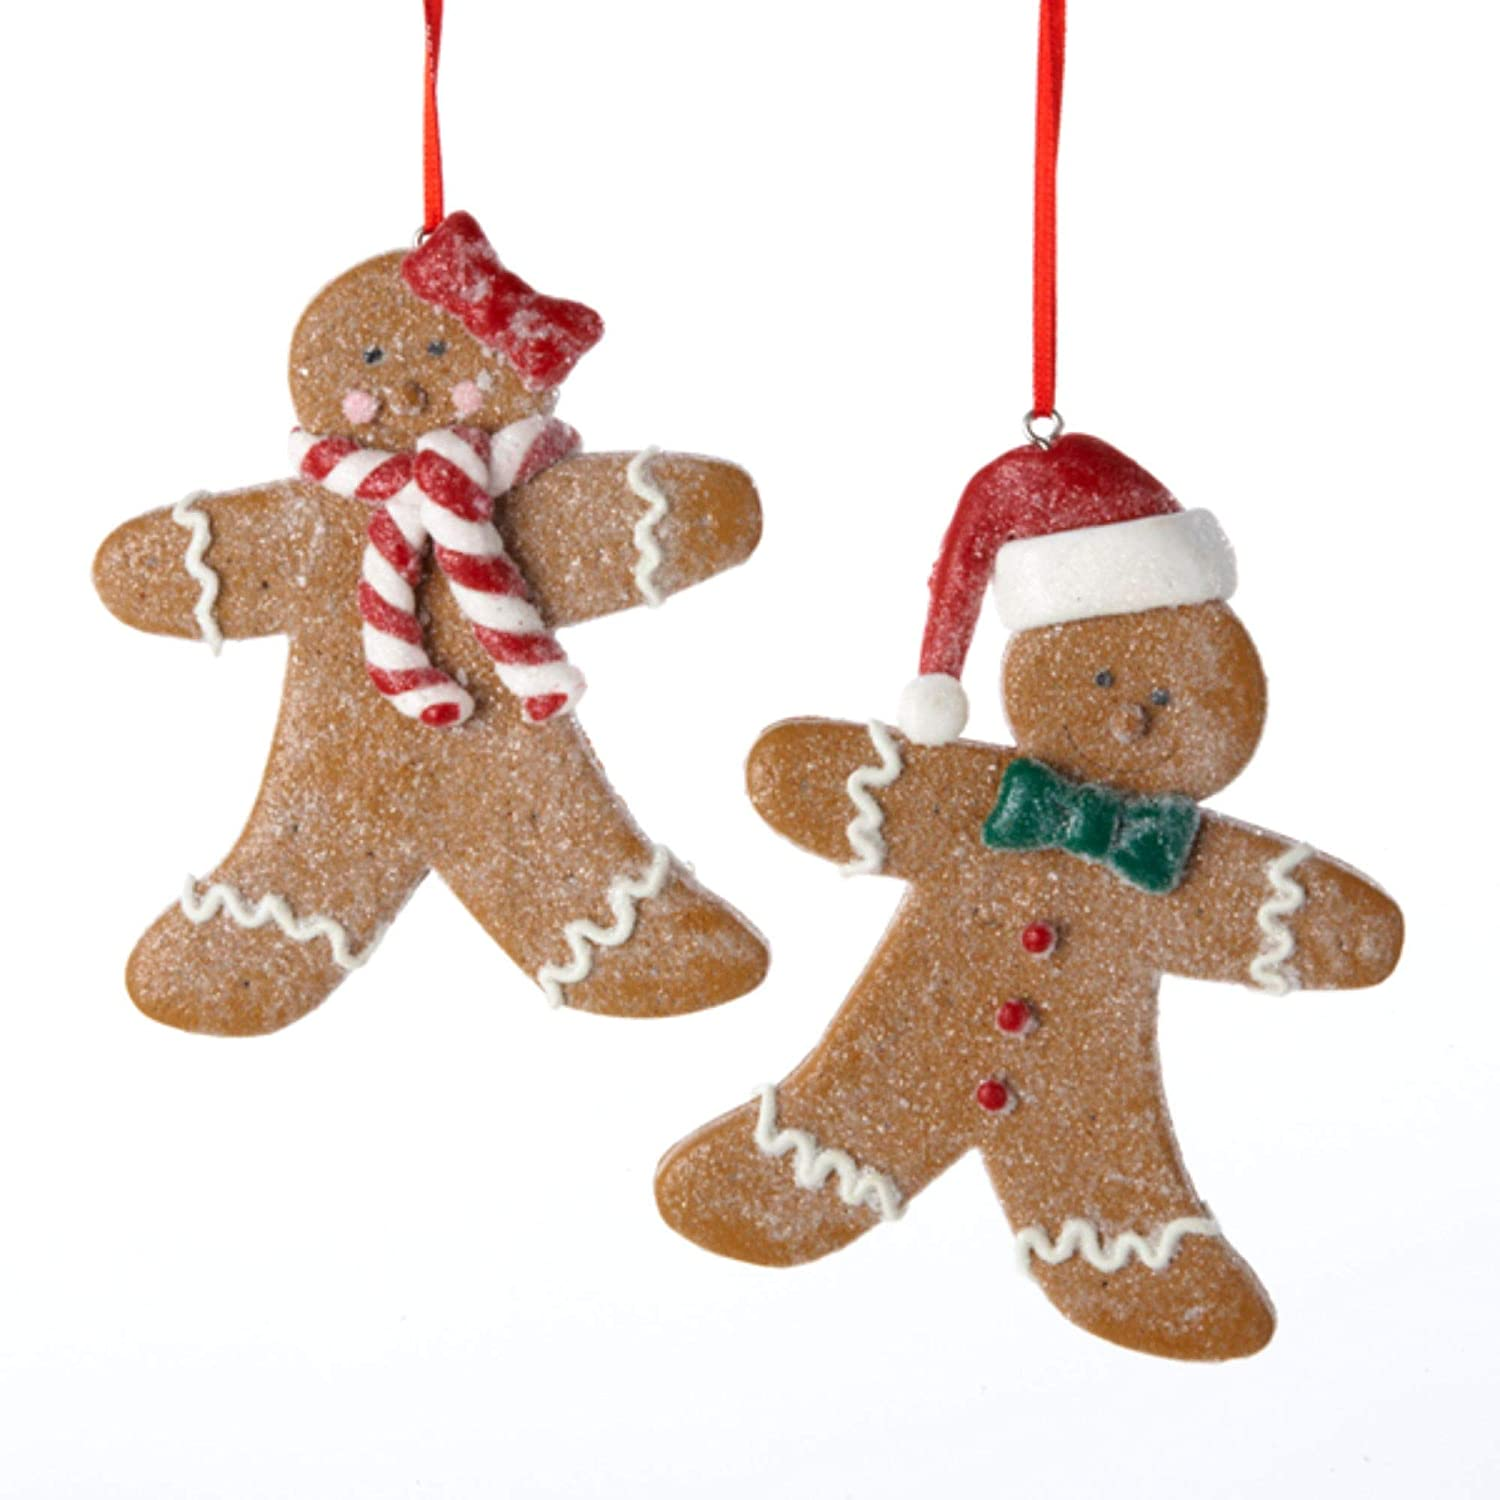 Club Pack of 12 Gingerbread Kisses Boy and Girl Cookie Christmas Ornaments 4.5